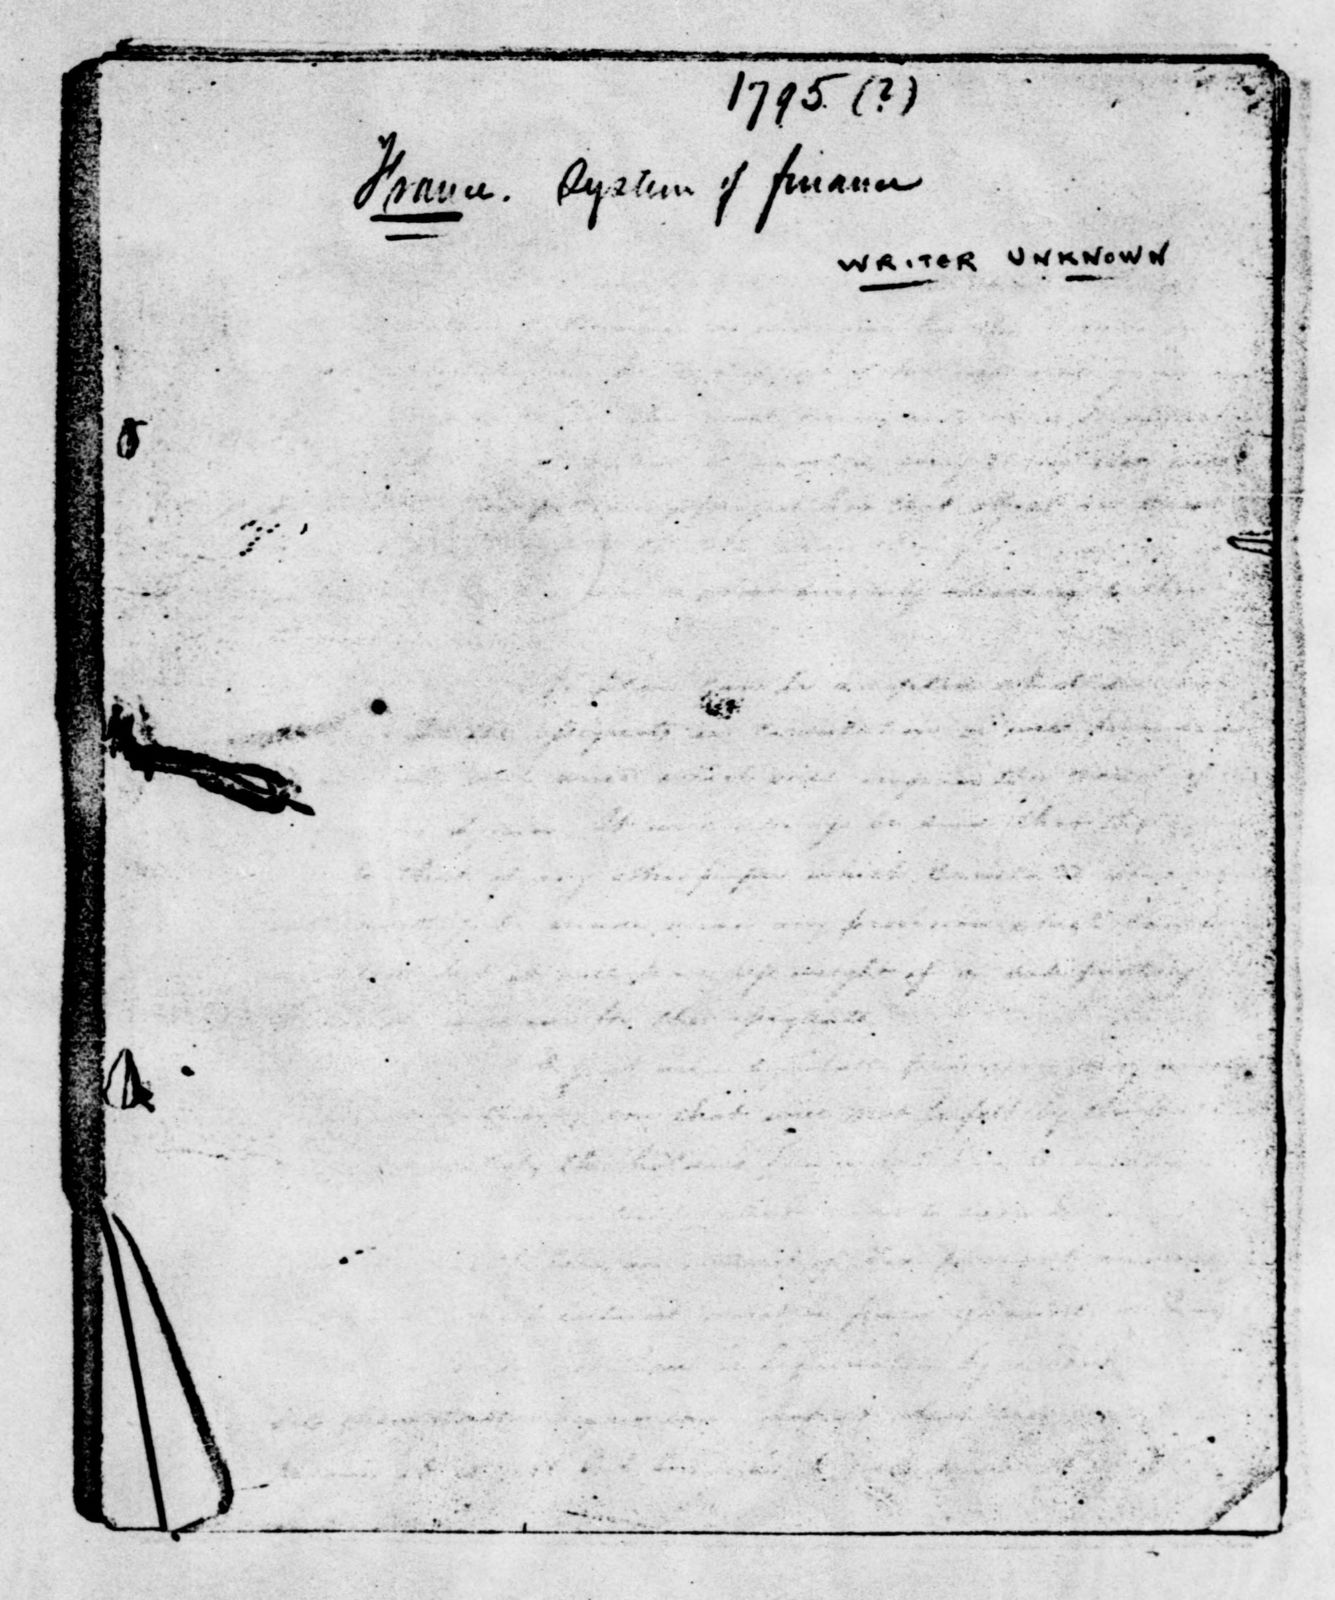 James Monroe Papers: Series 2, Additional Correspondence, 1776-1838; 1792 Oct. 20-1838 Nov. 14, undated (Reel 10)